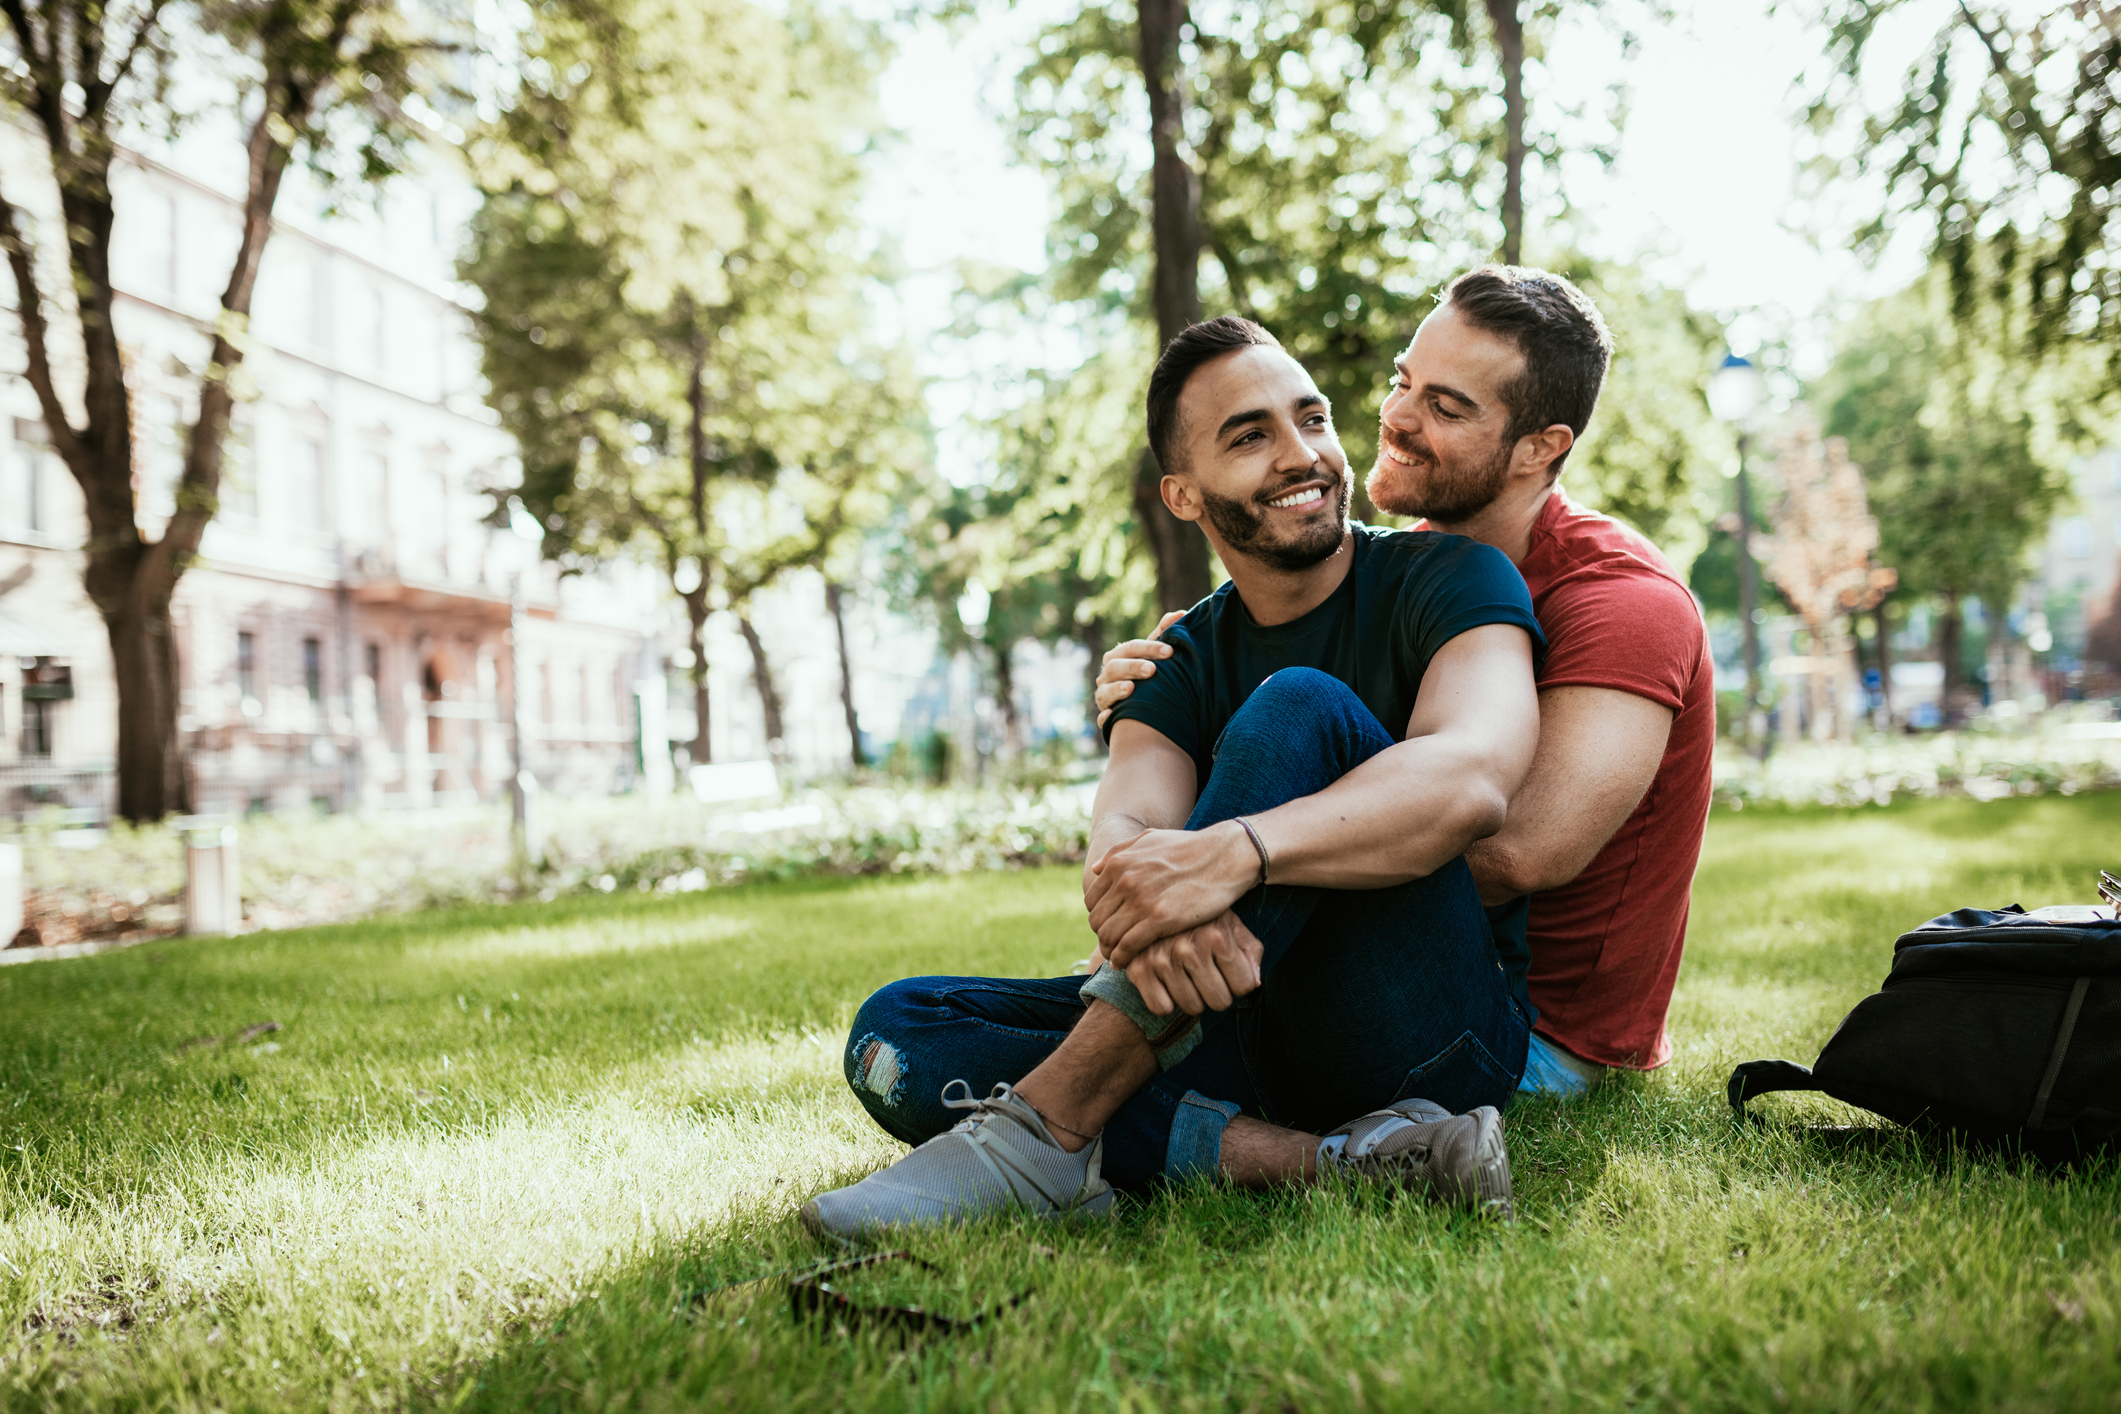 gay couples therapy, couples therapy, marriage counseling, same sex therapy,